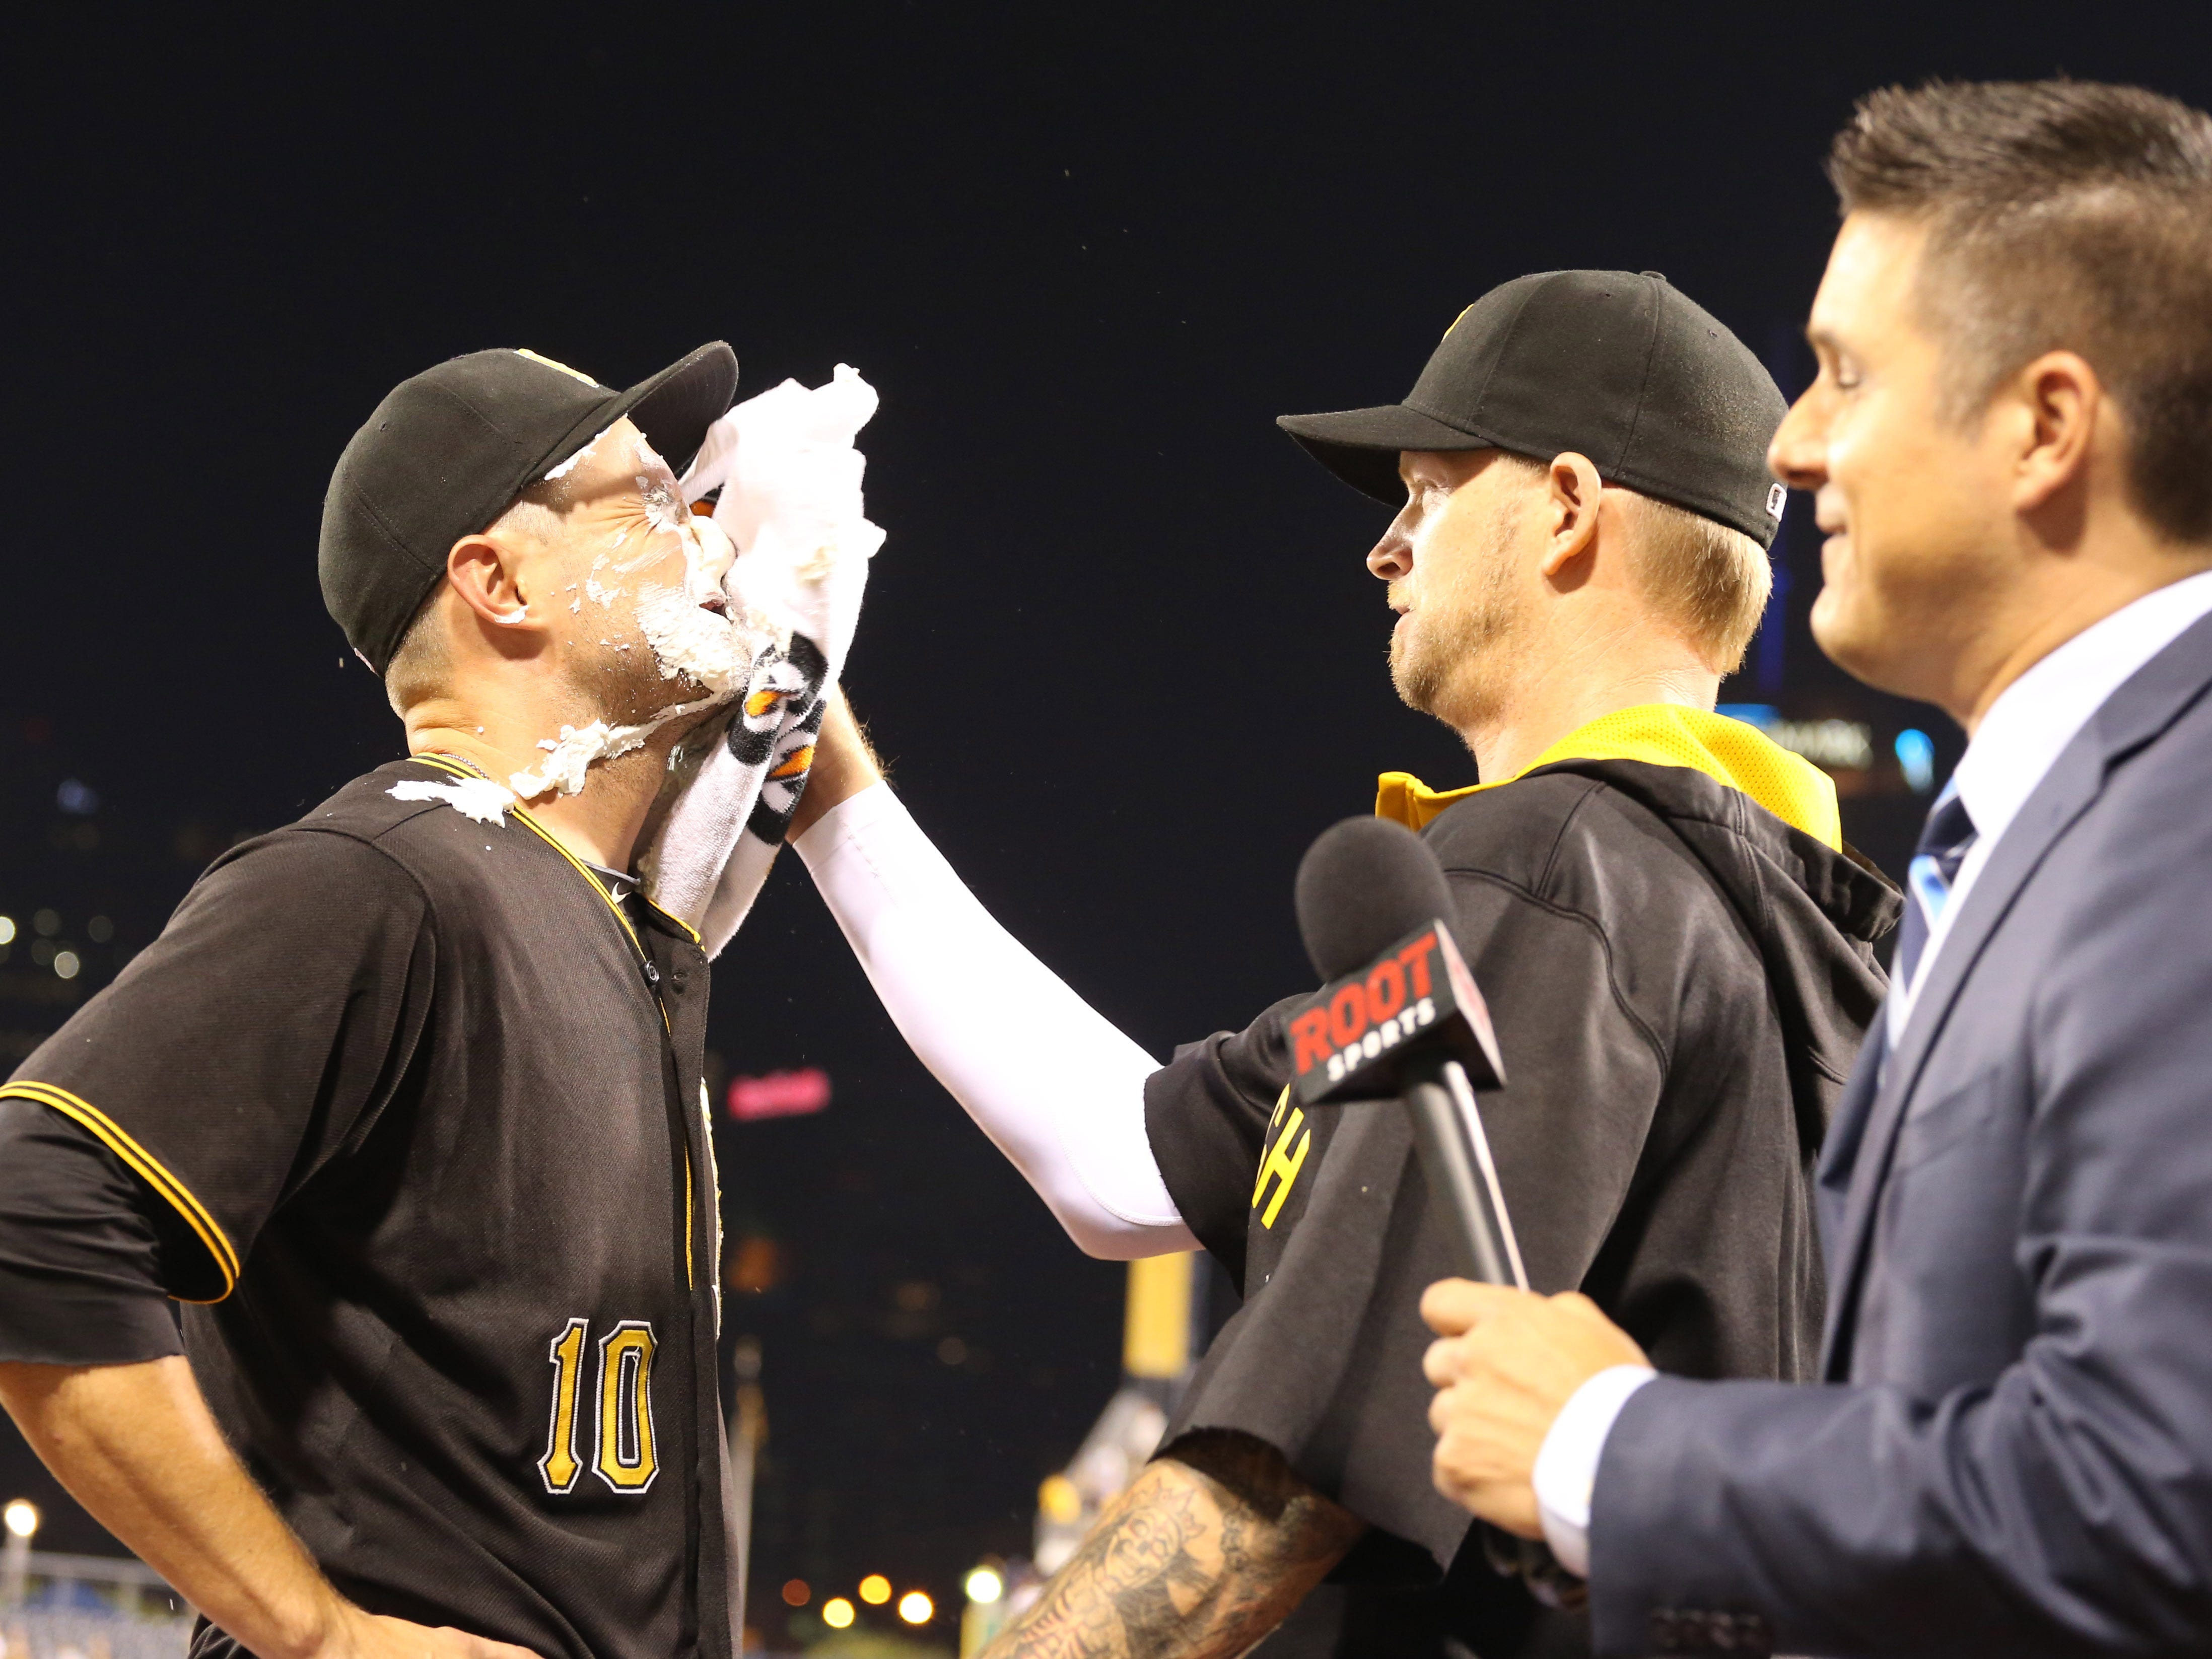 Pittsburgh Pirates shortstop Jordy Mercer is hit with a pie by pitcher A.J. Burnett after Mercer drove in the game winning run against the Atlanta Braves at PNC Park in 2015.